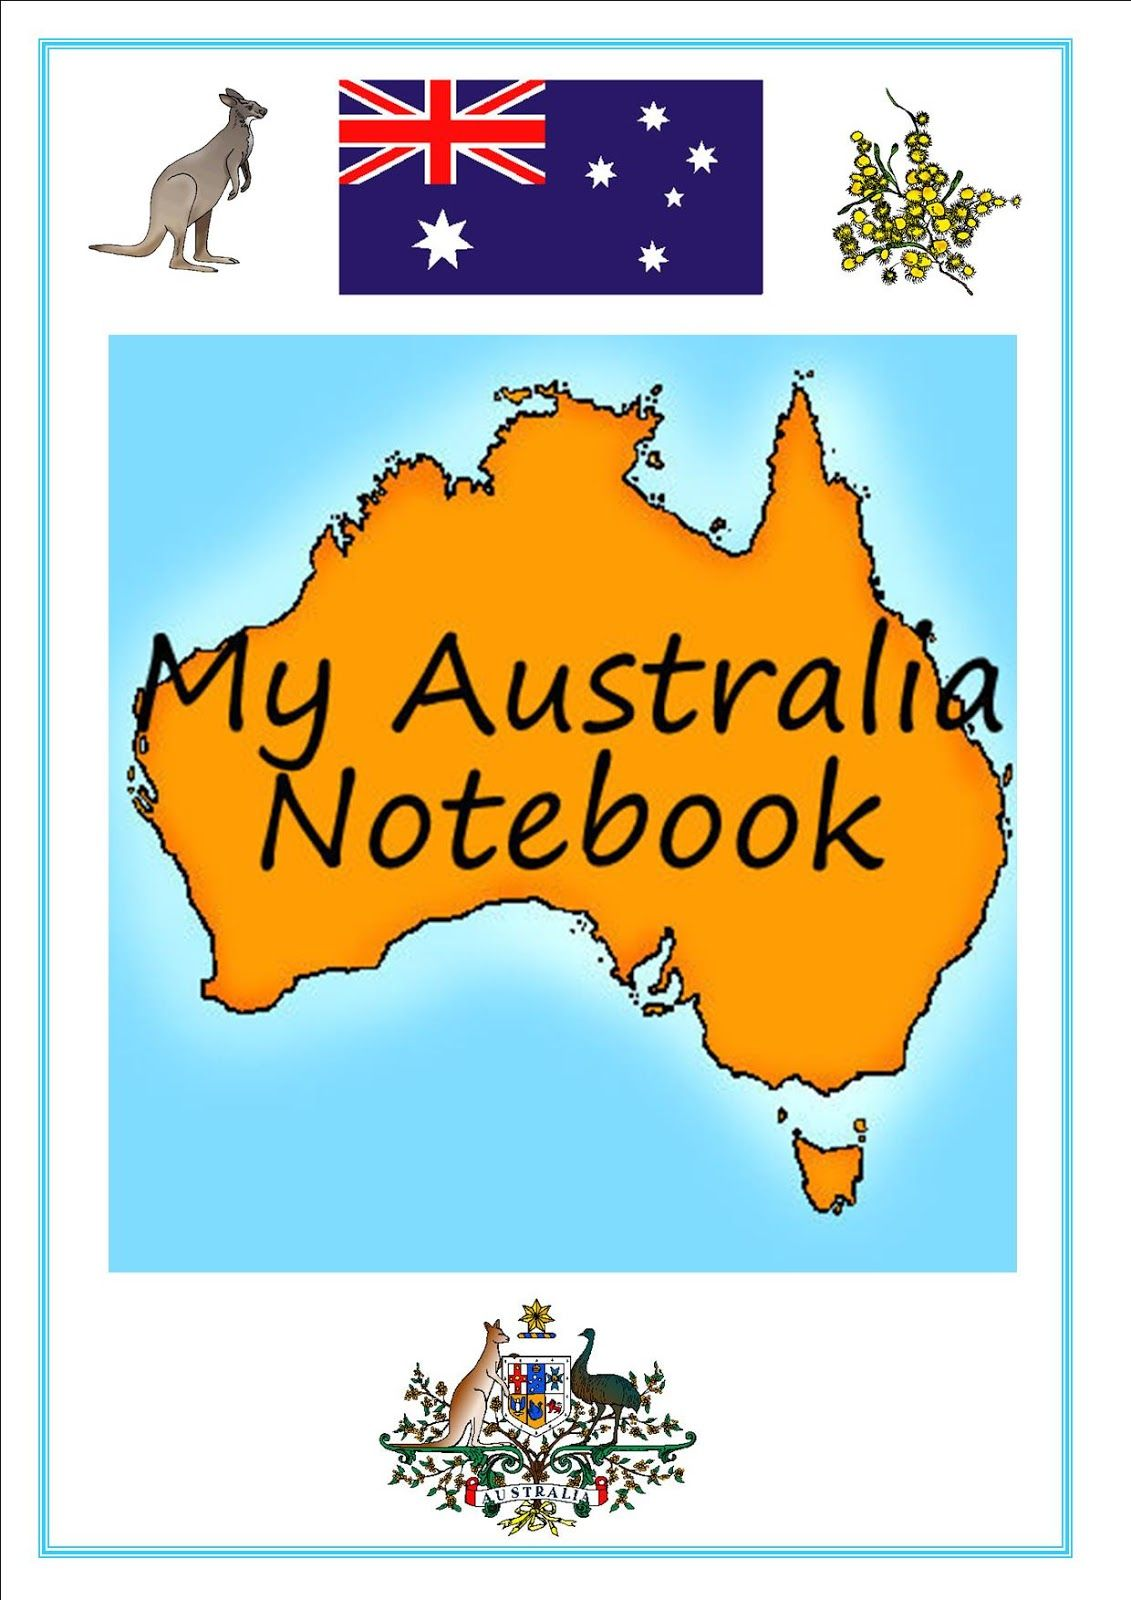 My Australia Notebook